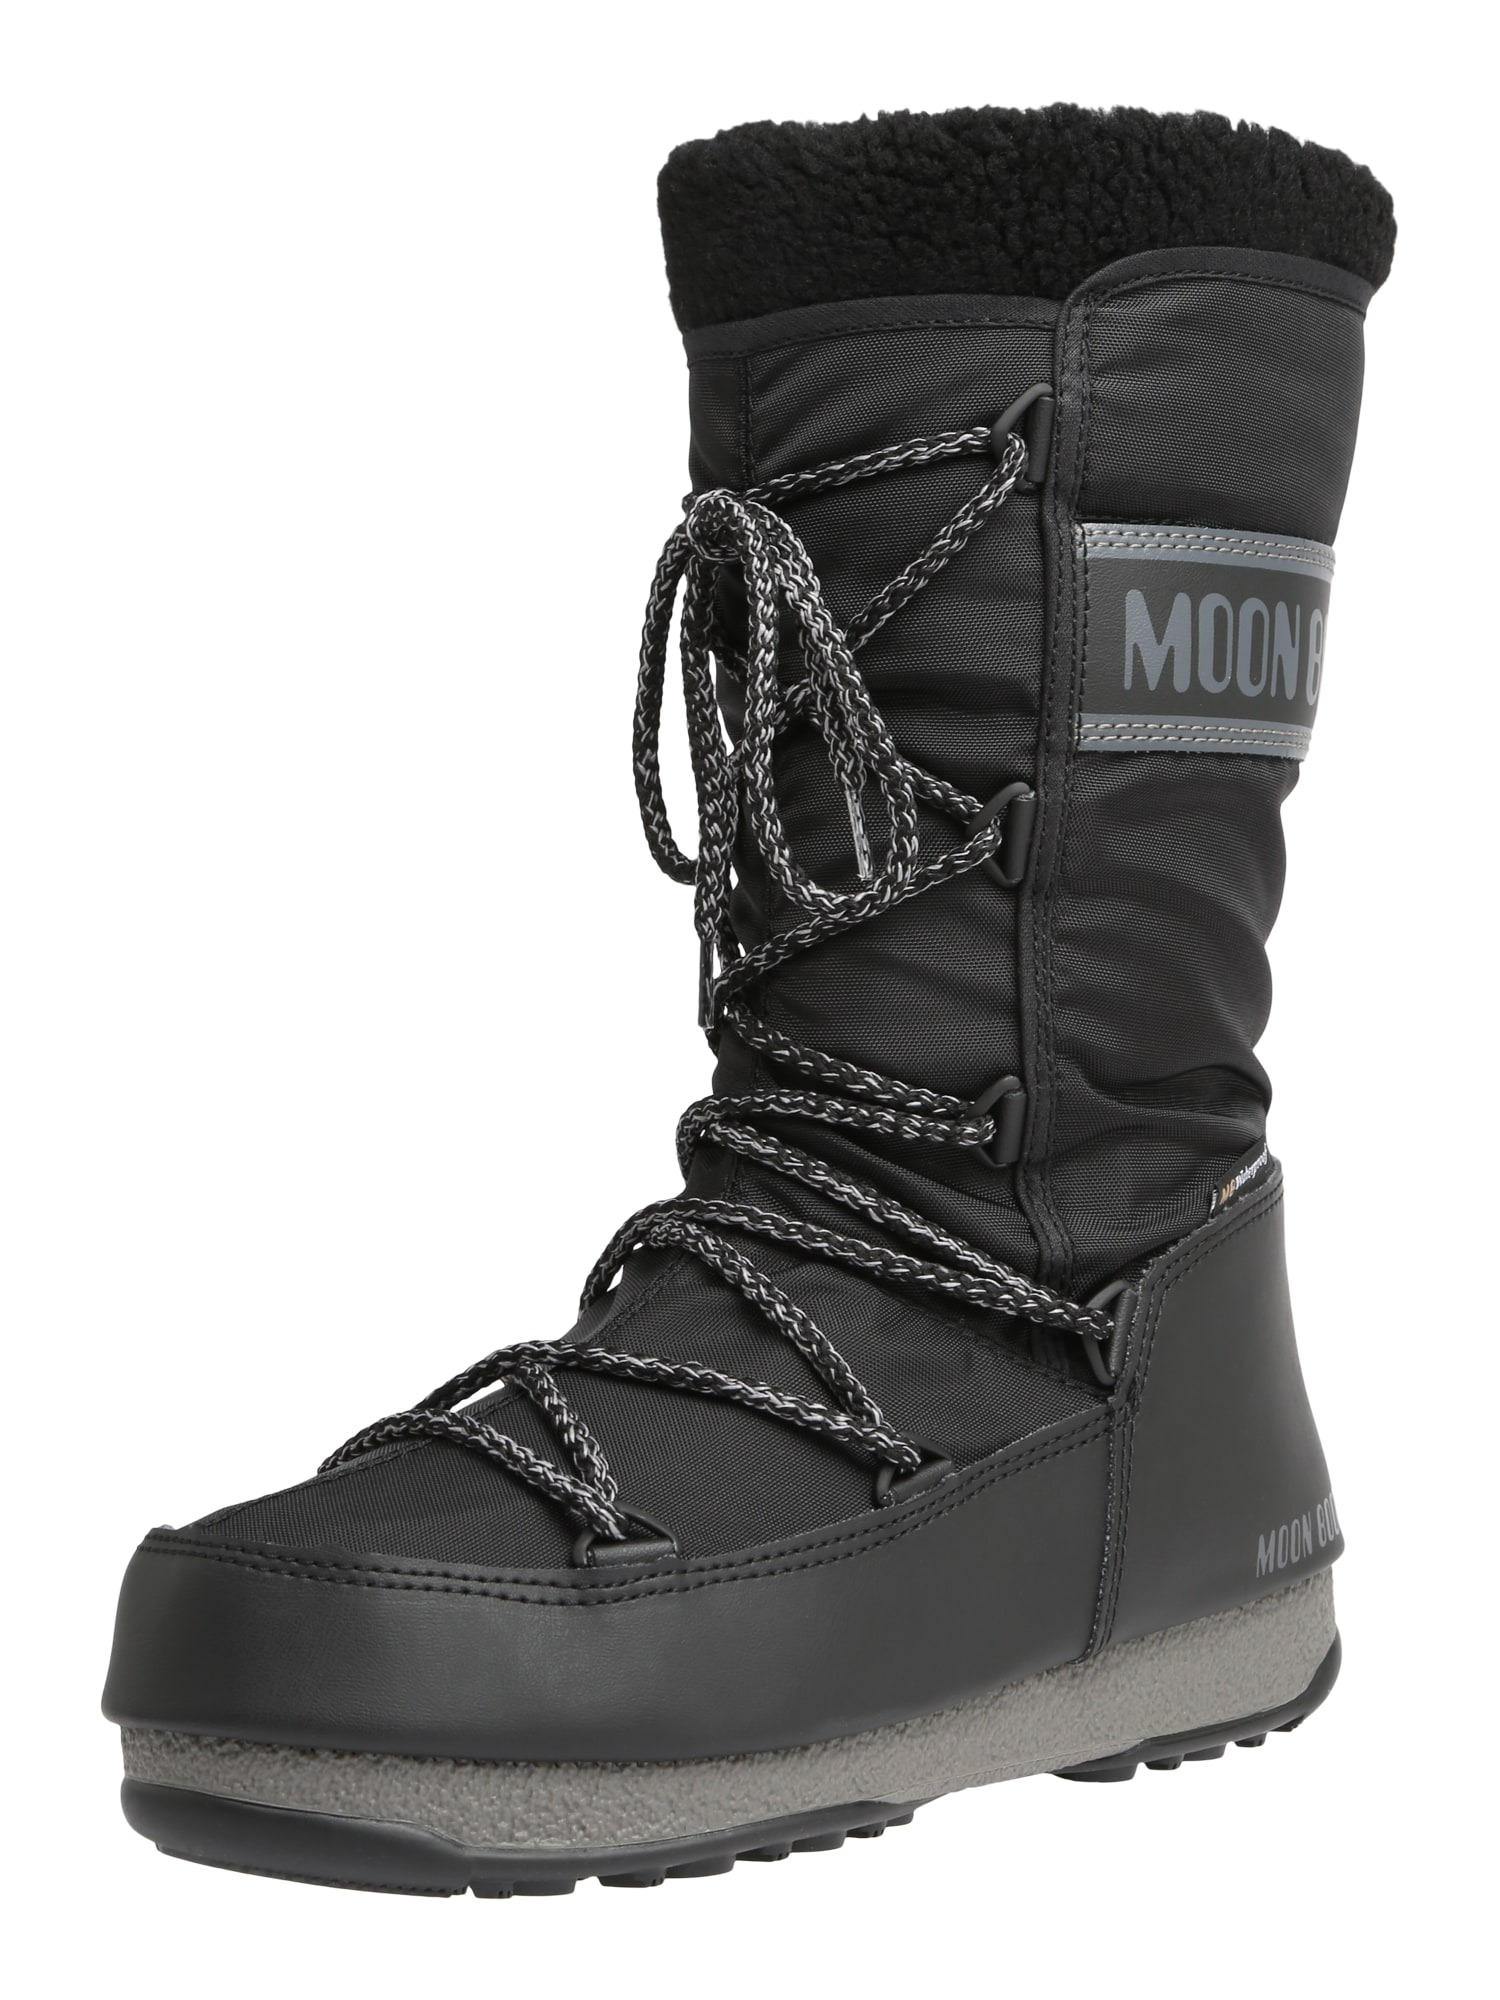 Snowboots 'MOON BOOT MONACO WOOL WP' | Schuhe > Boots > Snowboots | moon boot